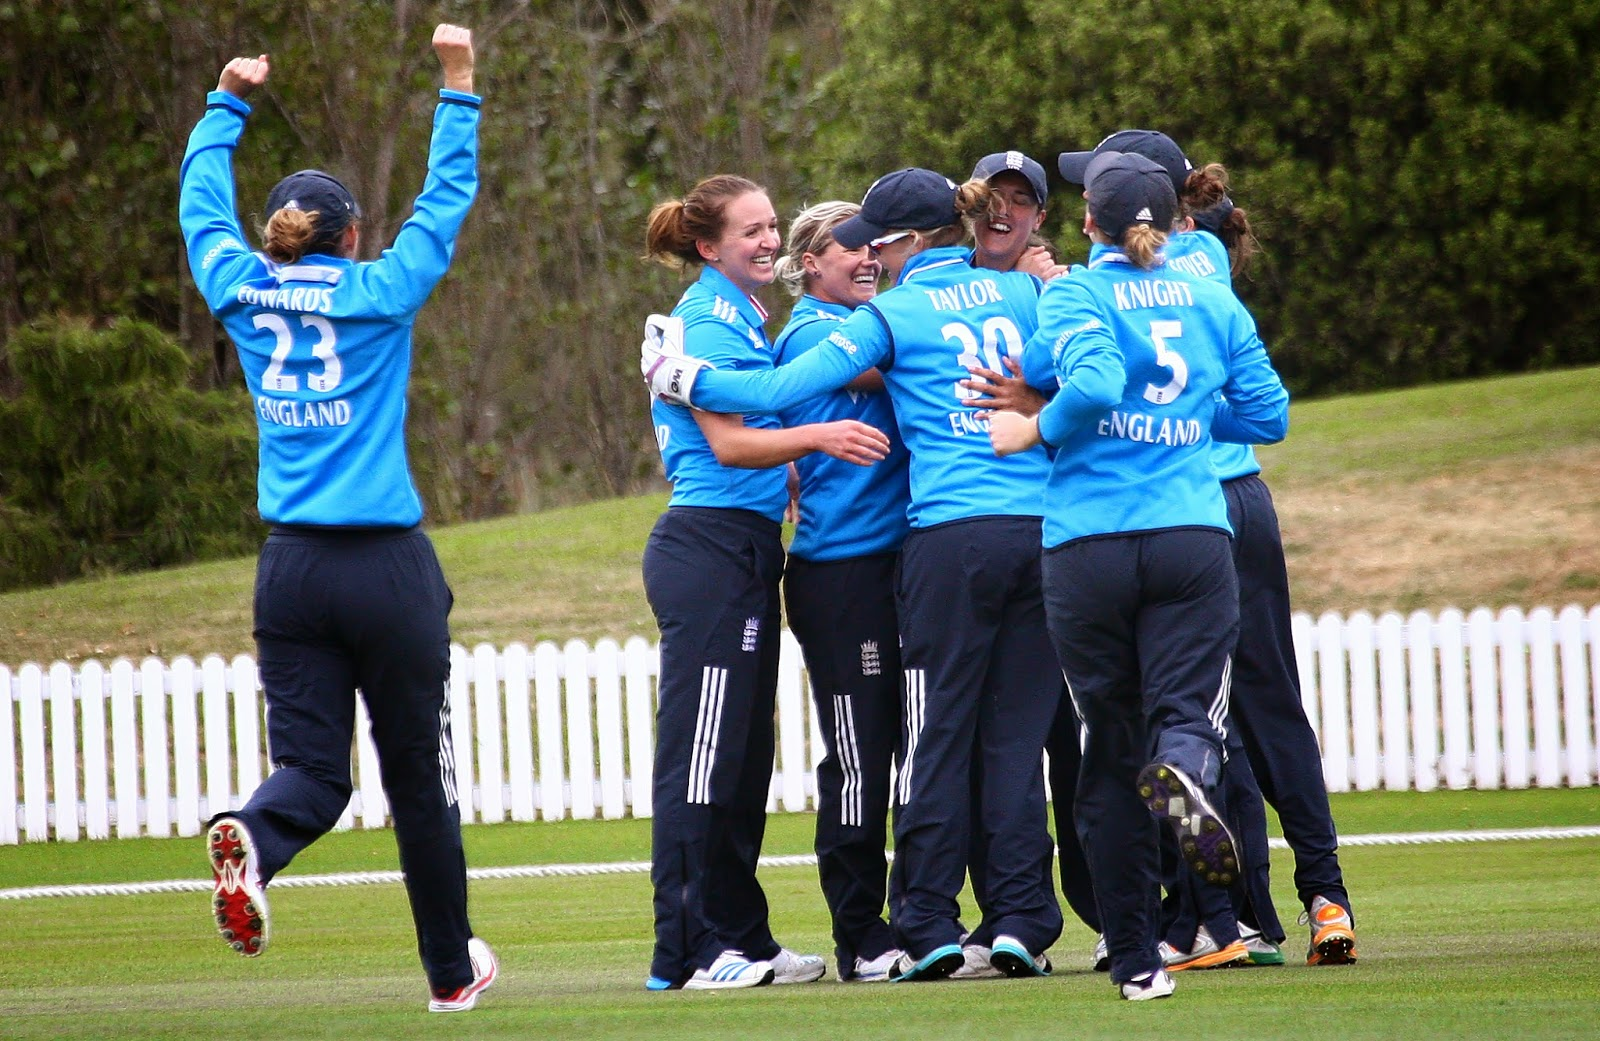 England Women prepared for competitive South Africa